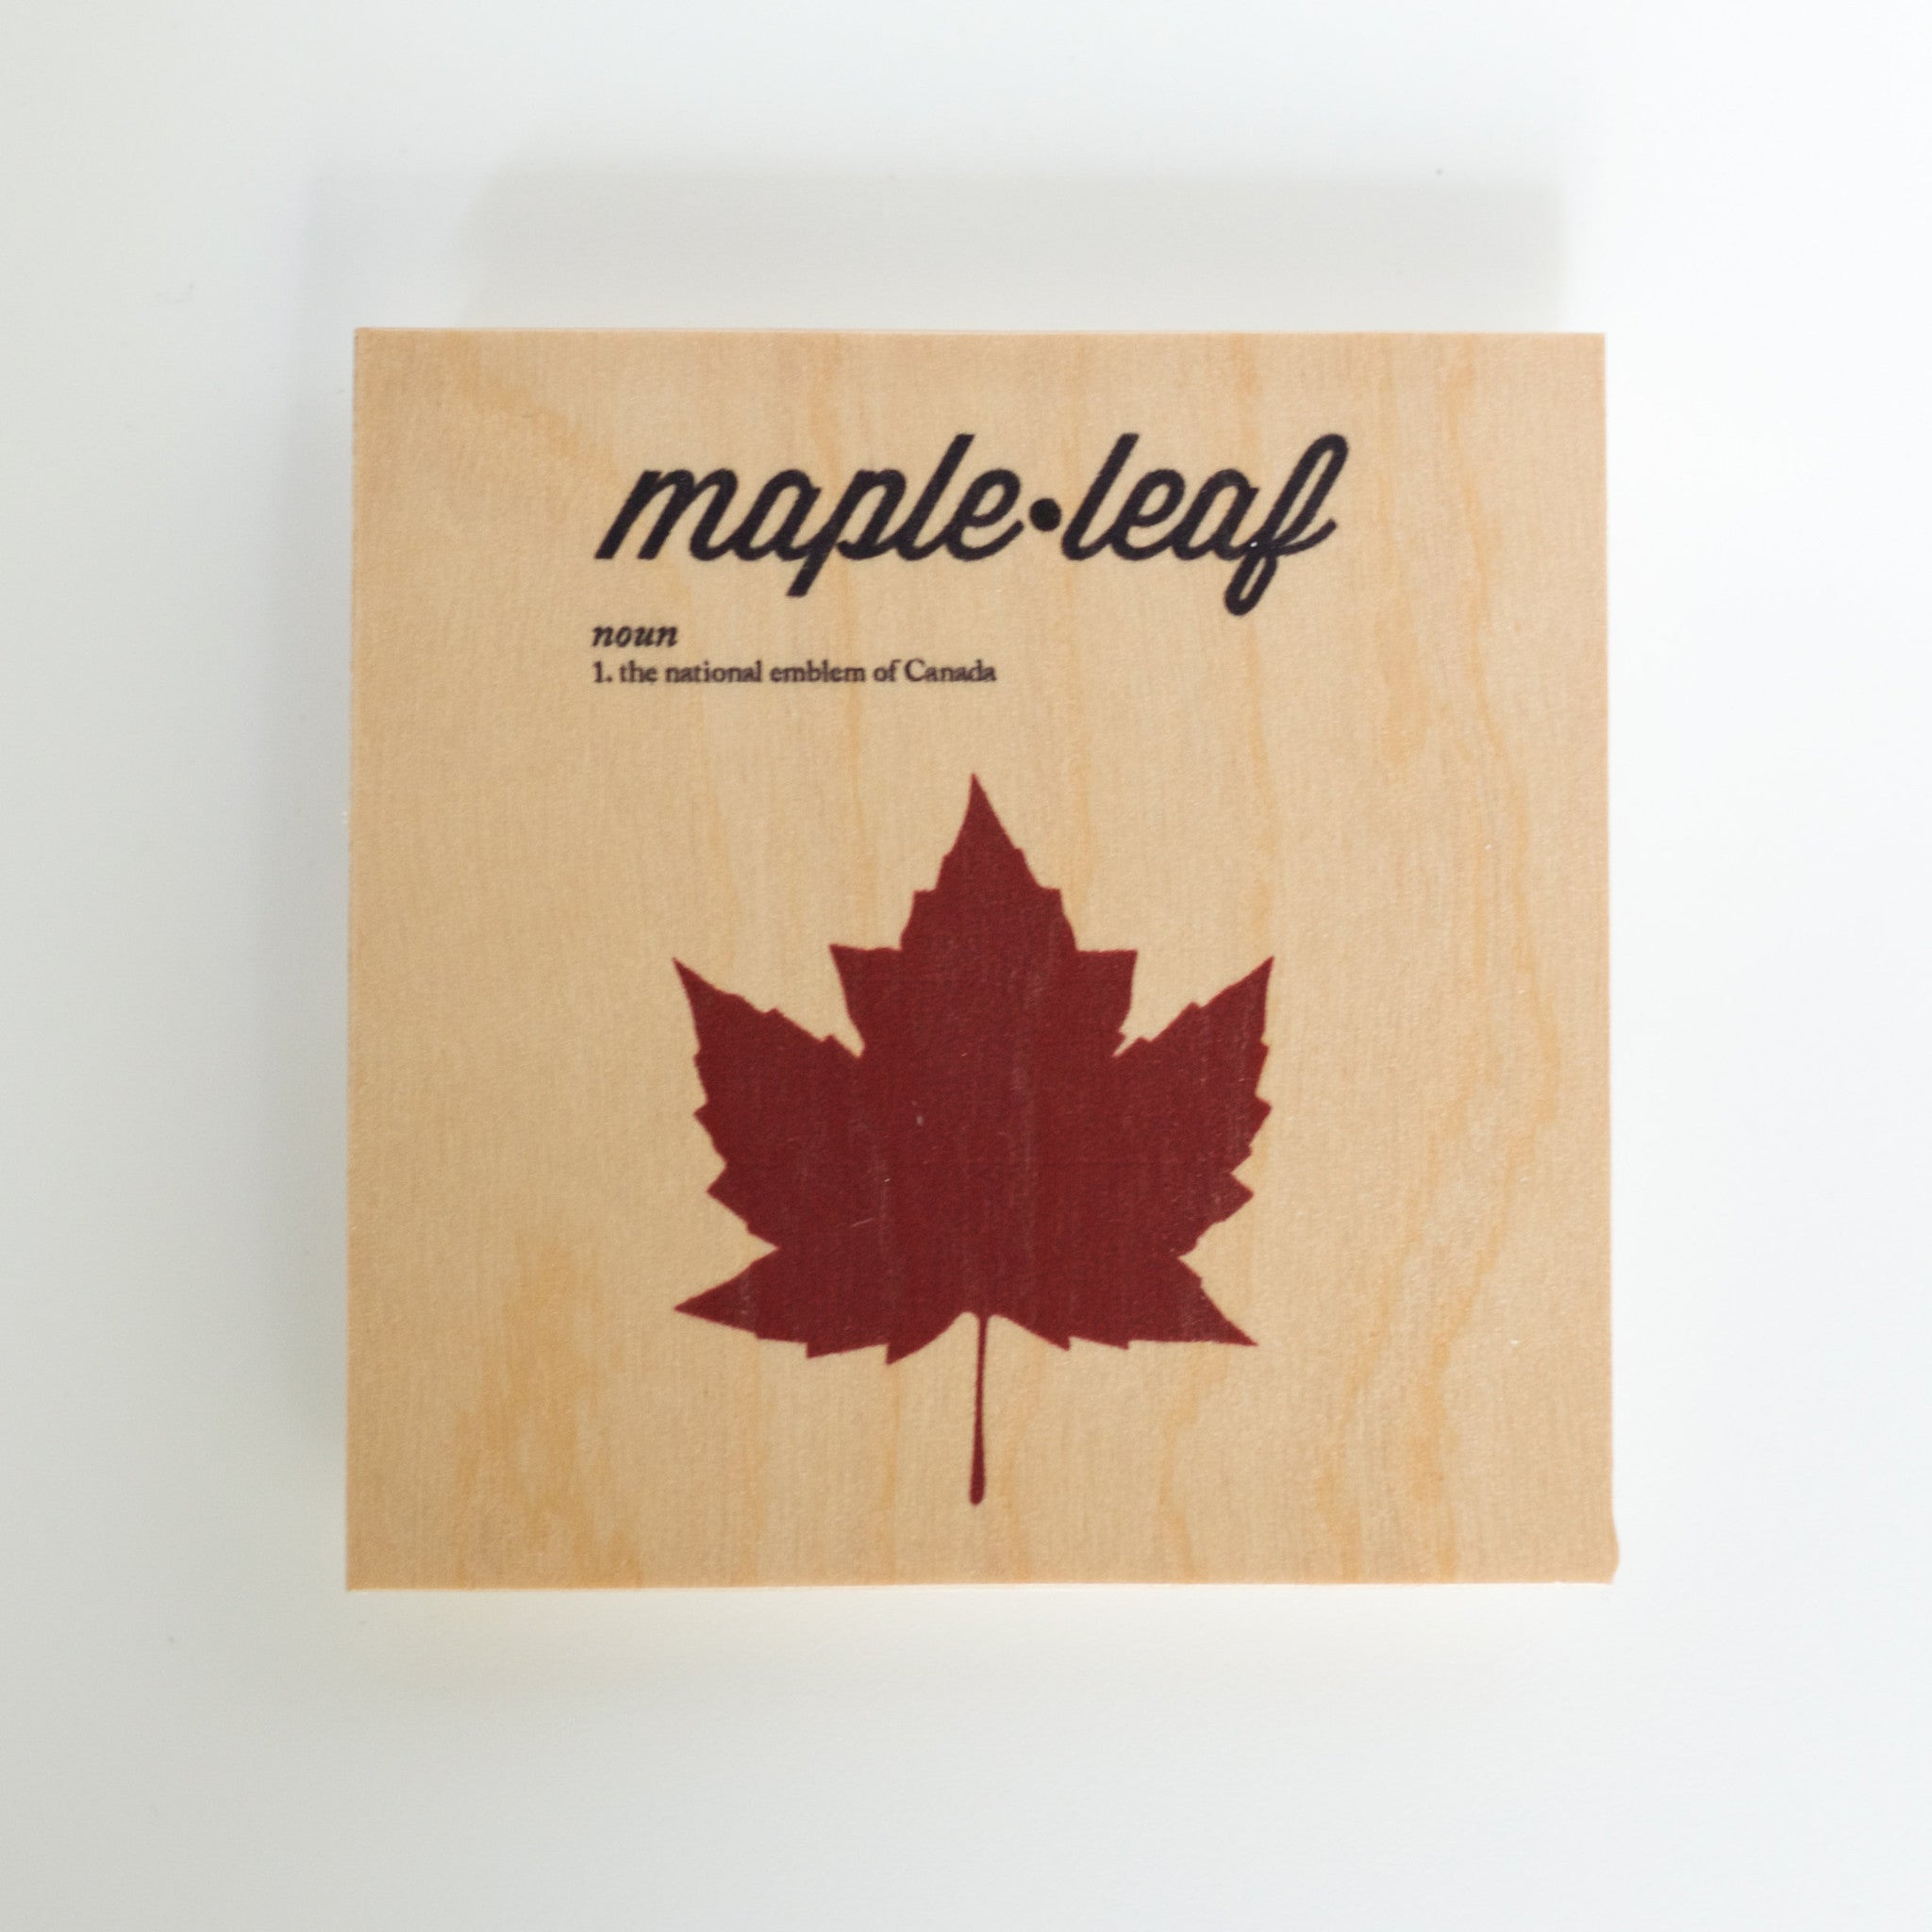 What does the maple leaf mean to canada